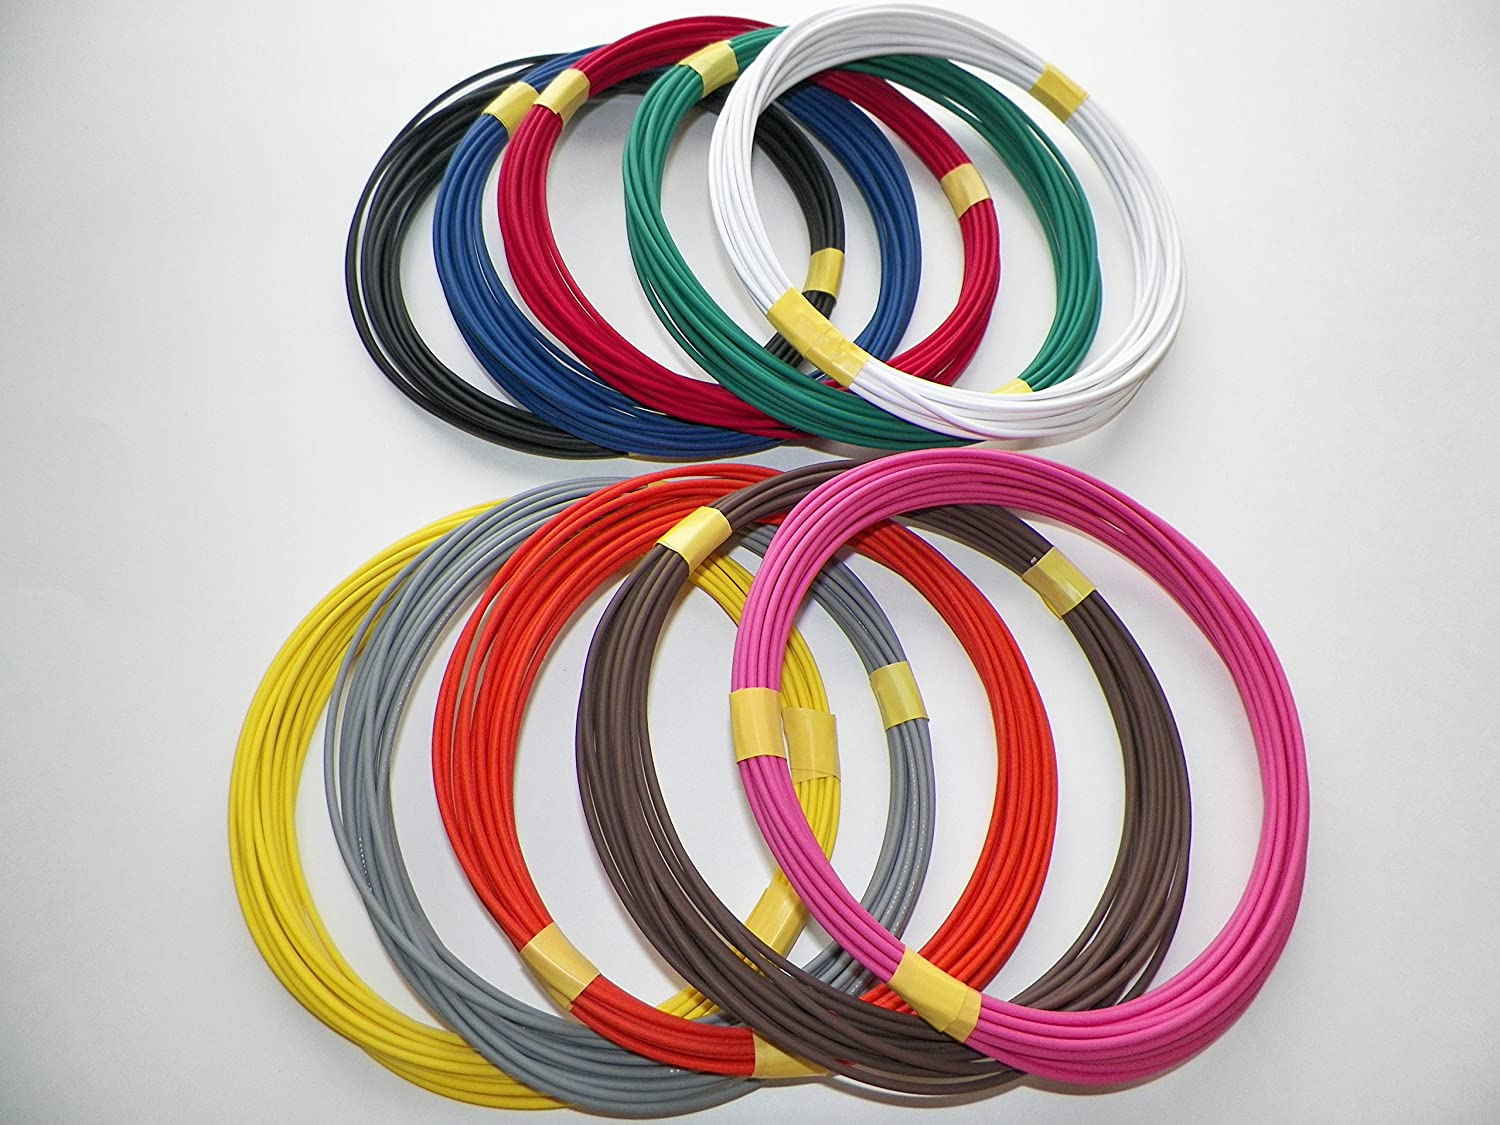 B073NMP1Y6 Automotive Copper Wire, GXL, 14 GA, AWG, GAUGE Truck, Motorcycle, RV, General Purpose. Order by 3pm EST Shipped Same Day (10 Colors 25' Each) 91Sff2Bqsq4L